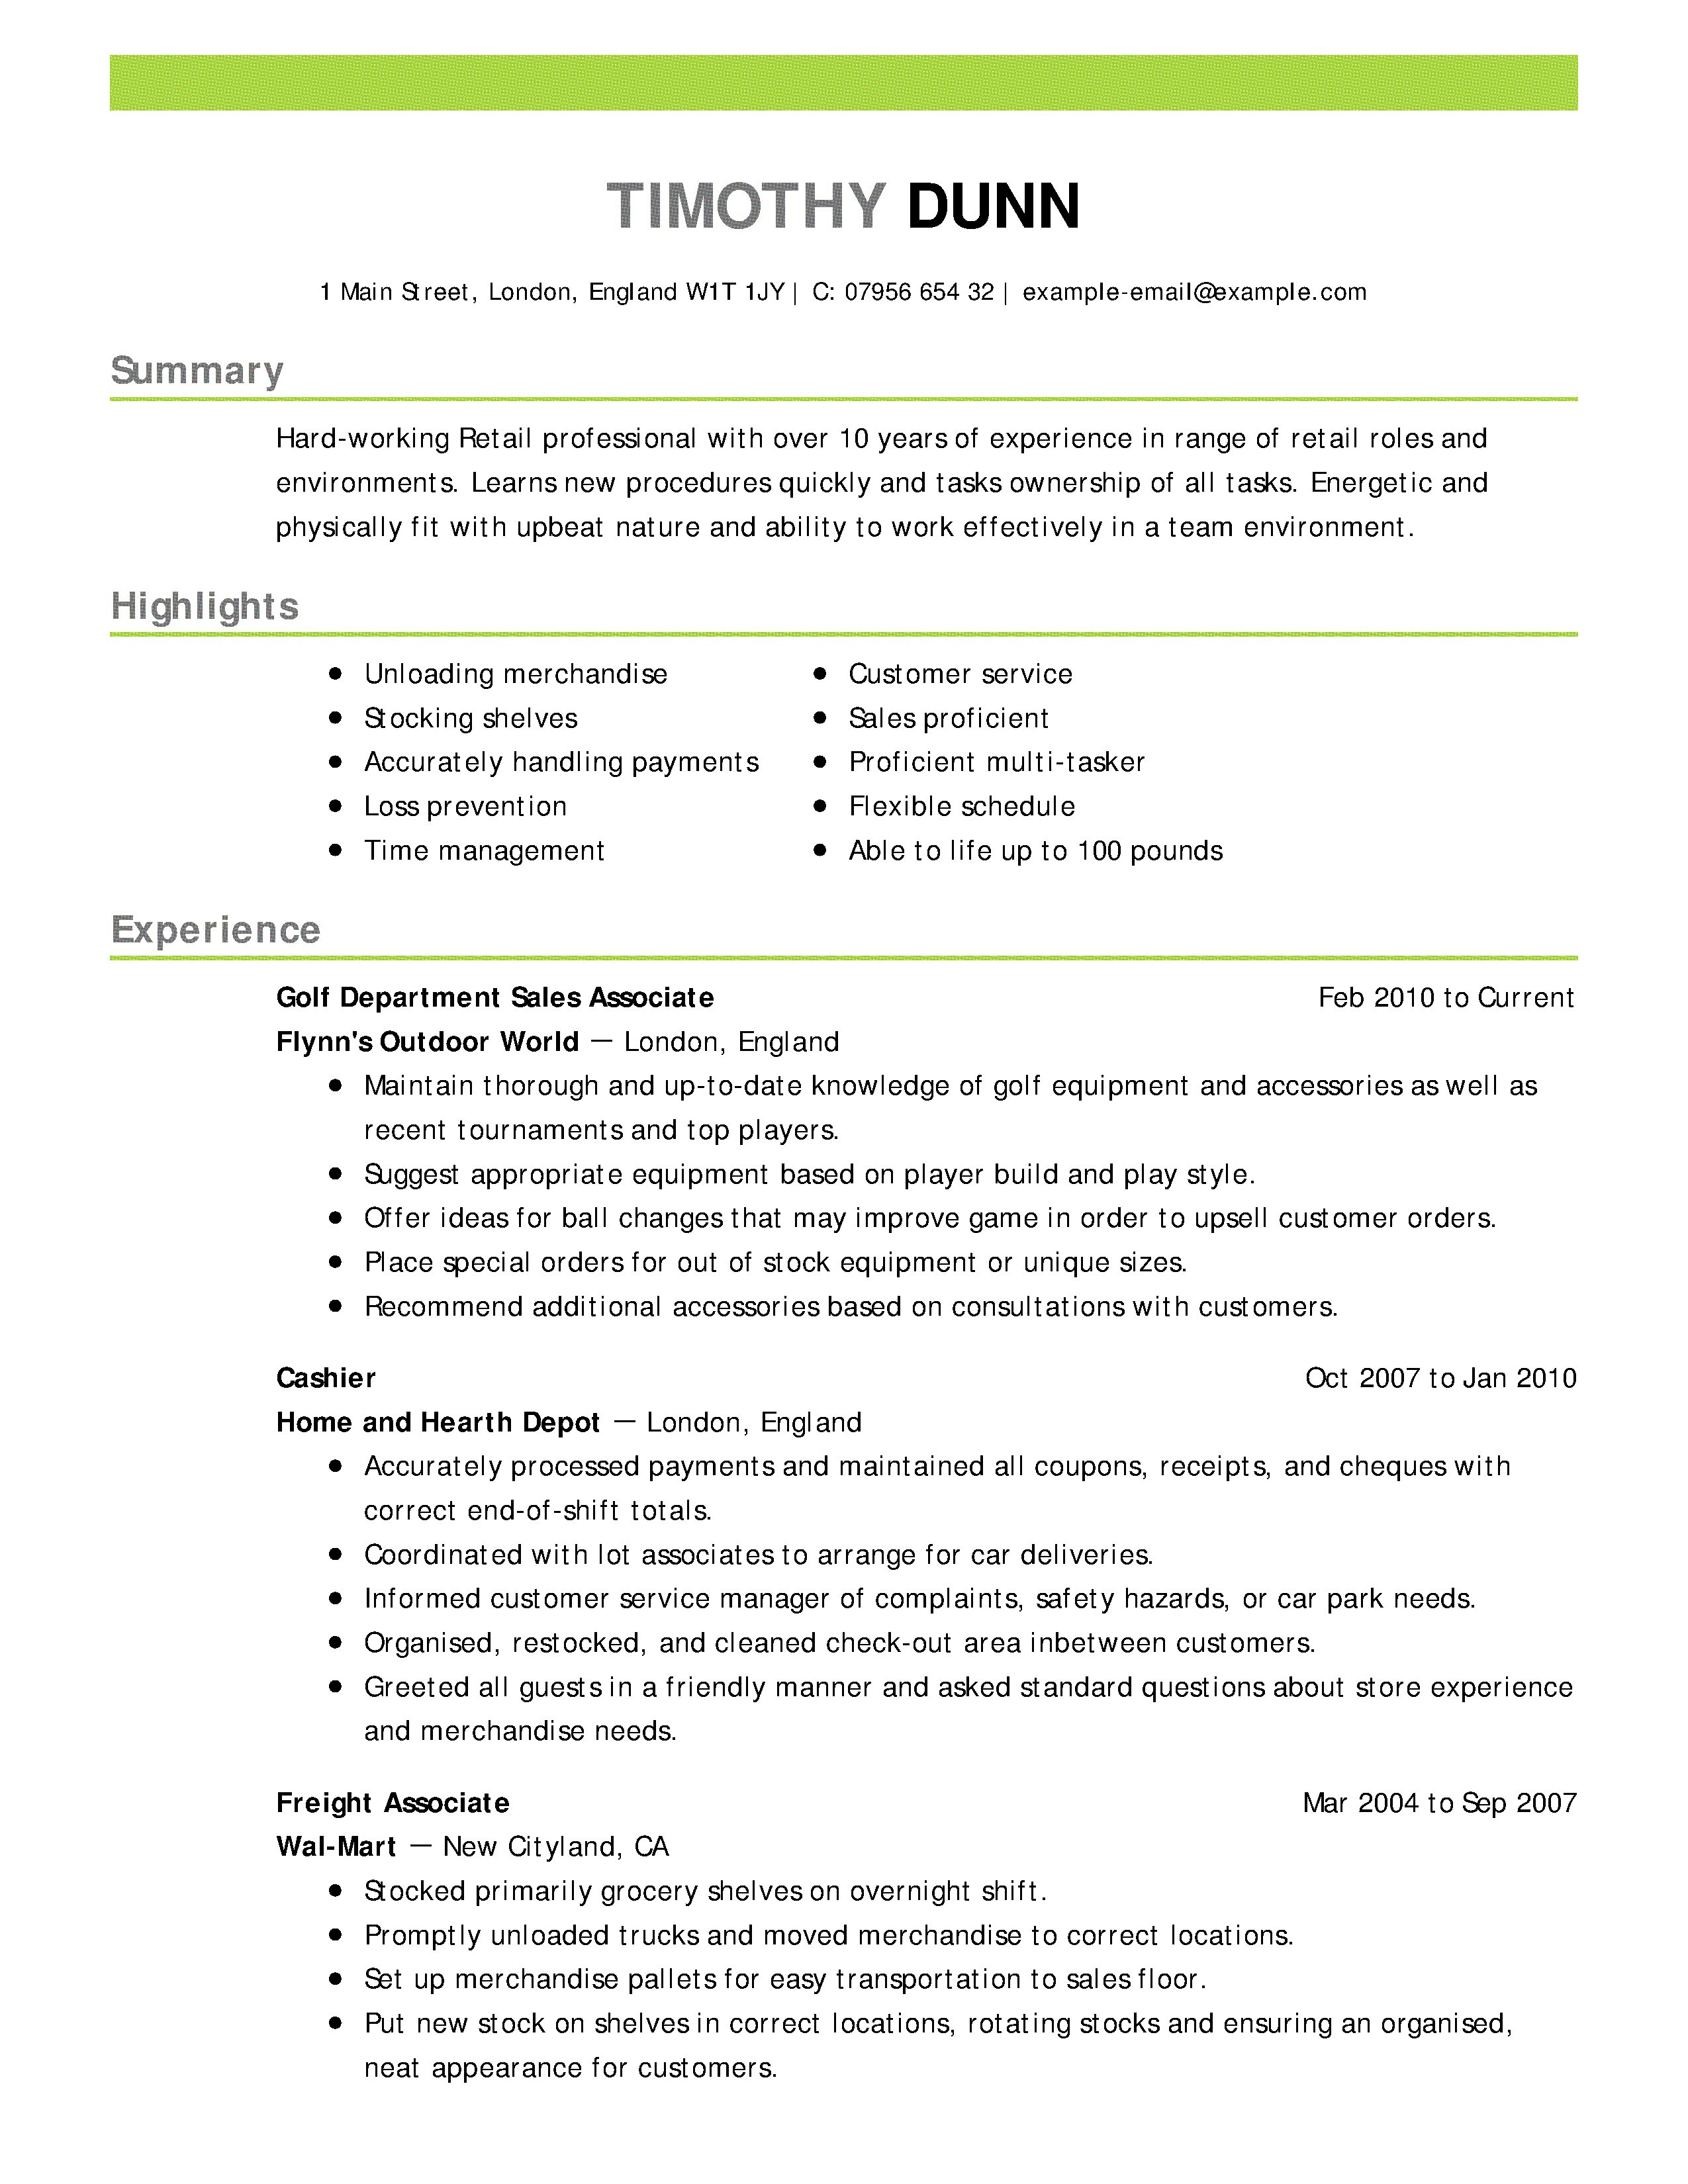 Social Media Manager Resume Examples - Resume Samples Ms Word Archives Margorochelle